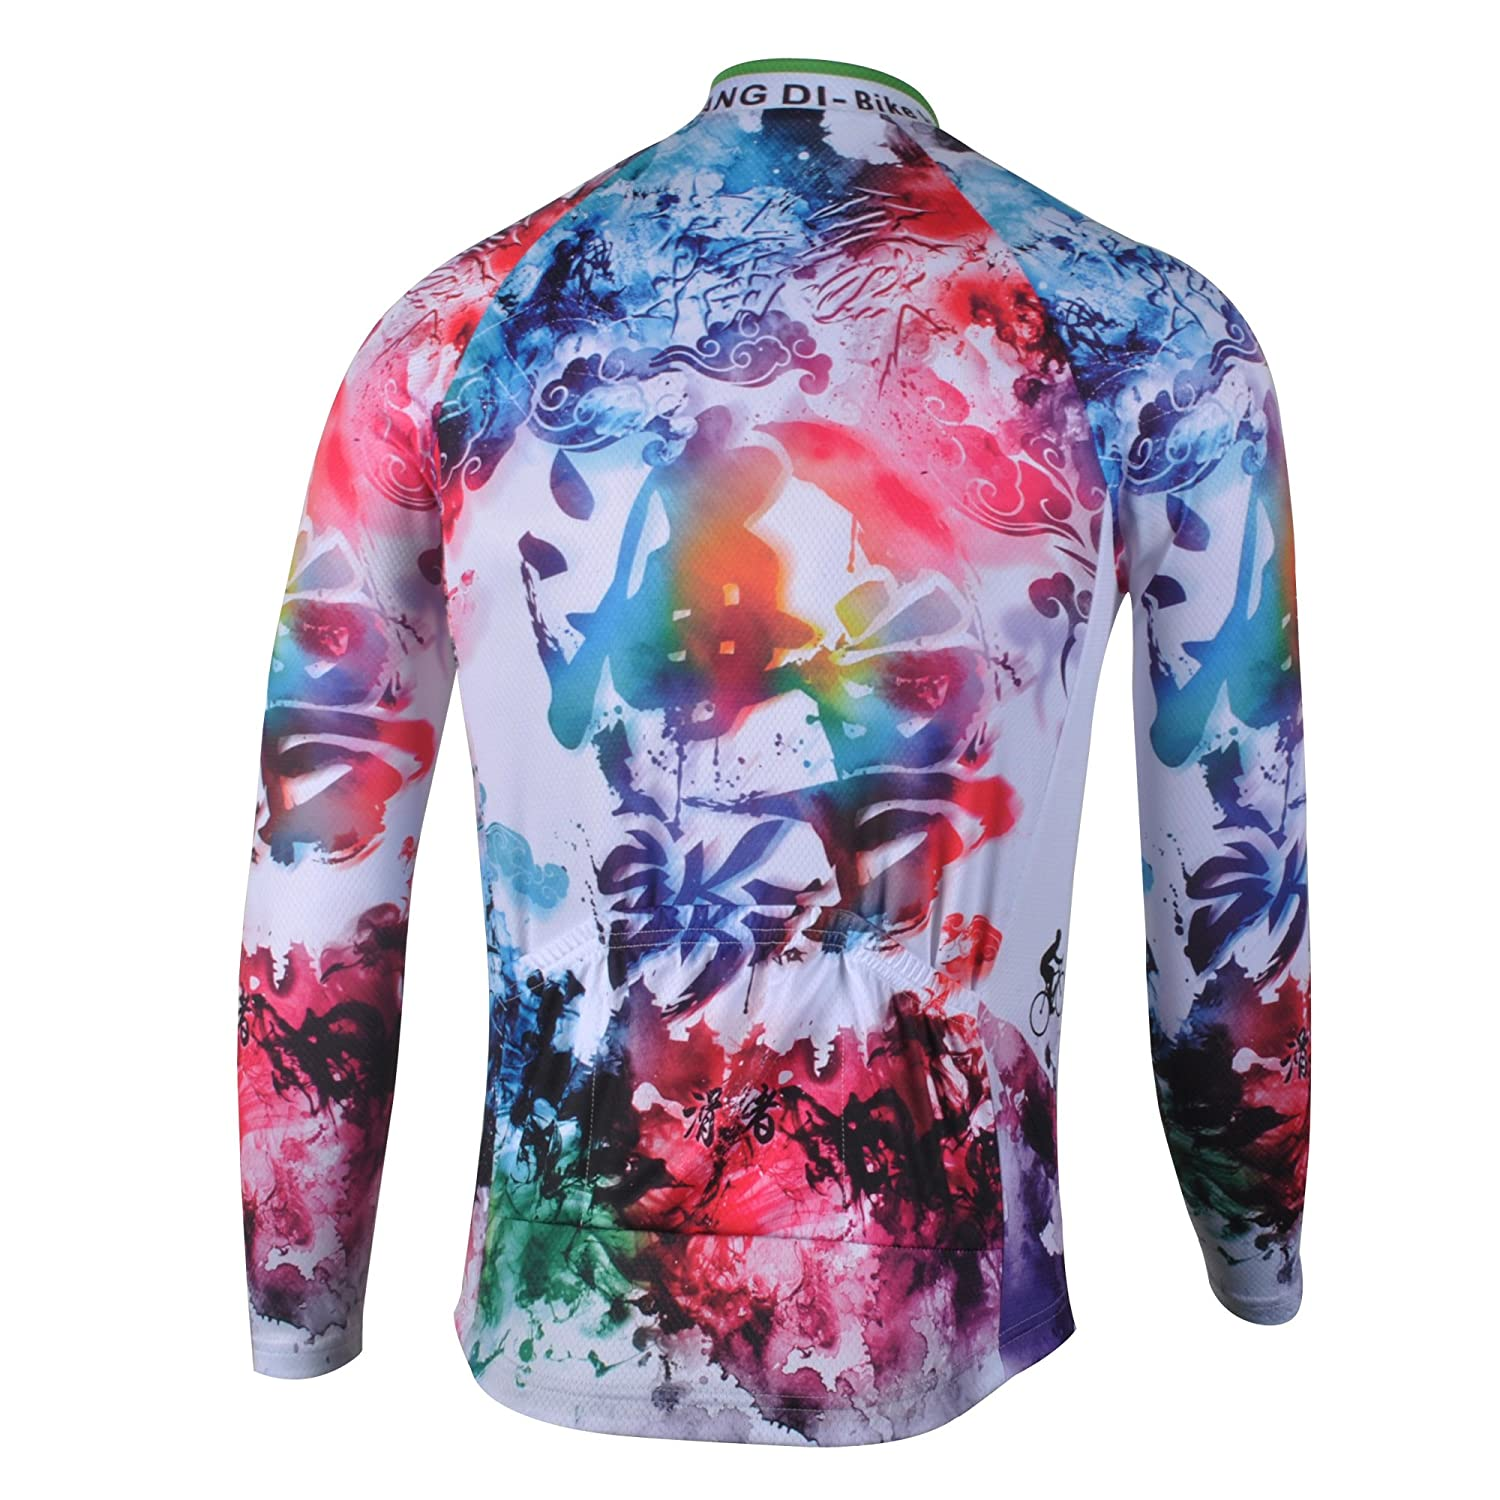 fd7b93013 Amazon.com  zm Men s Spring Cycling Jersey Long Sleeve Road Autumn Bike  Jersey Jacket  Clothing